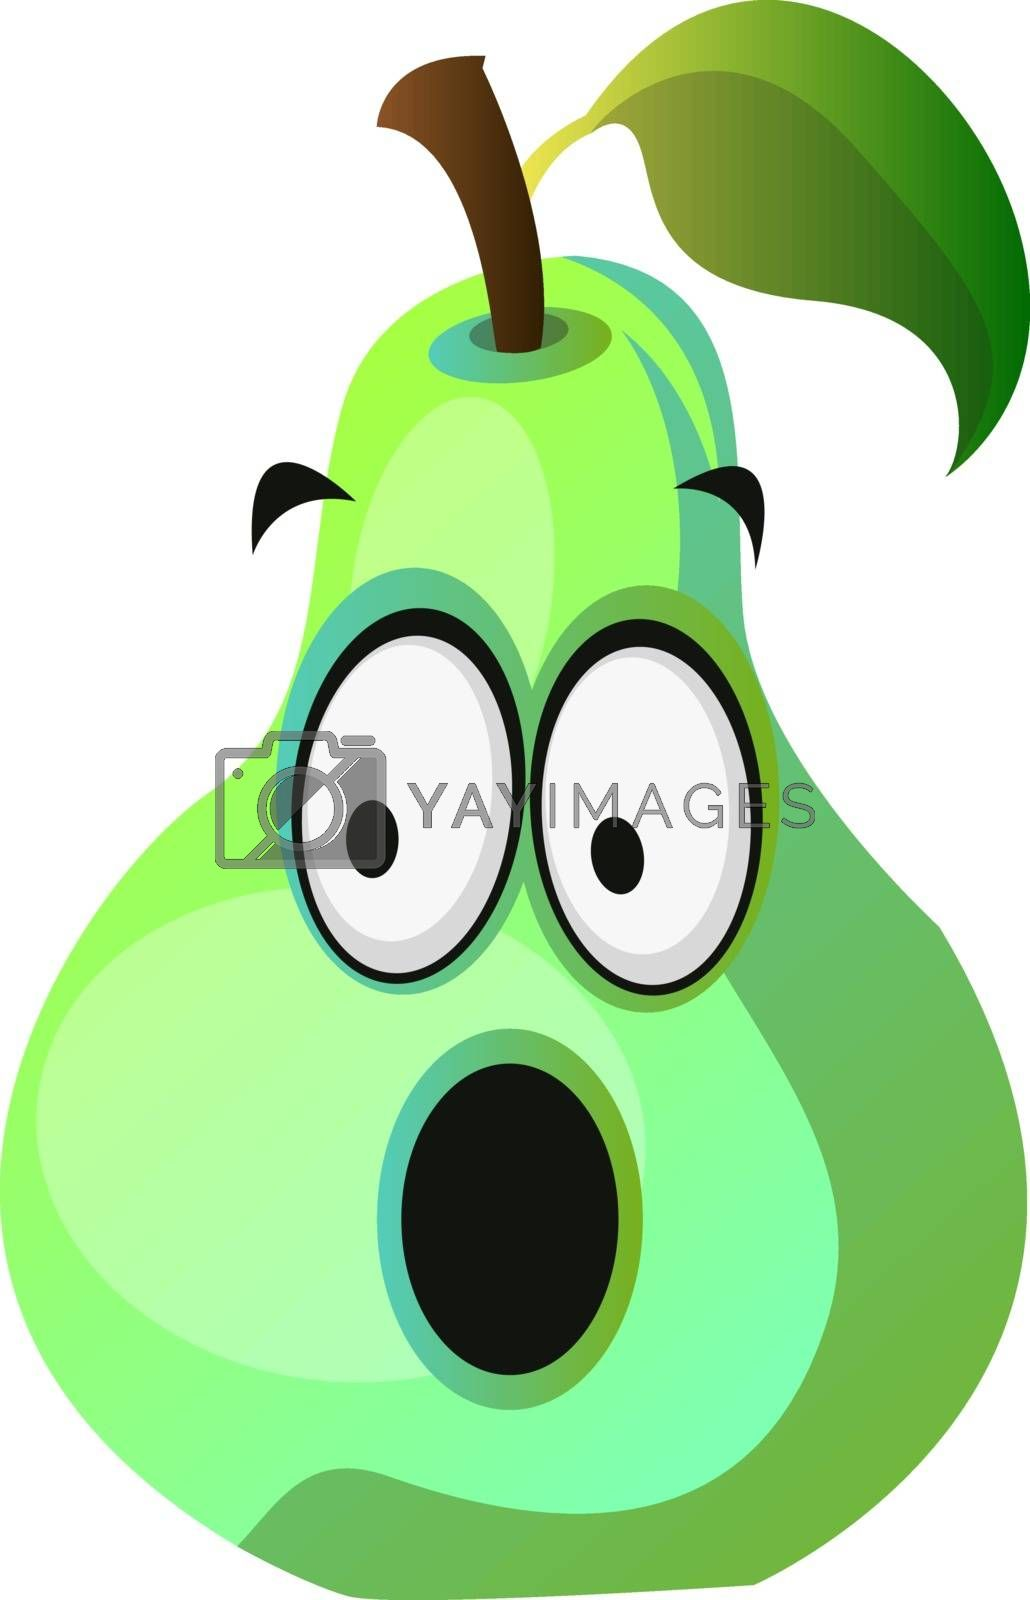 Royalty free image of Amazed pear cartoon face illustration vector on white background by Morphart